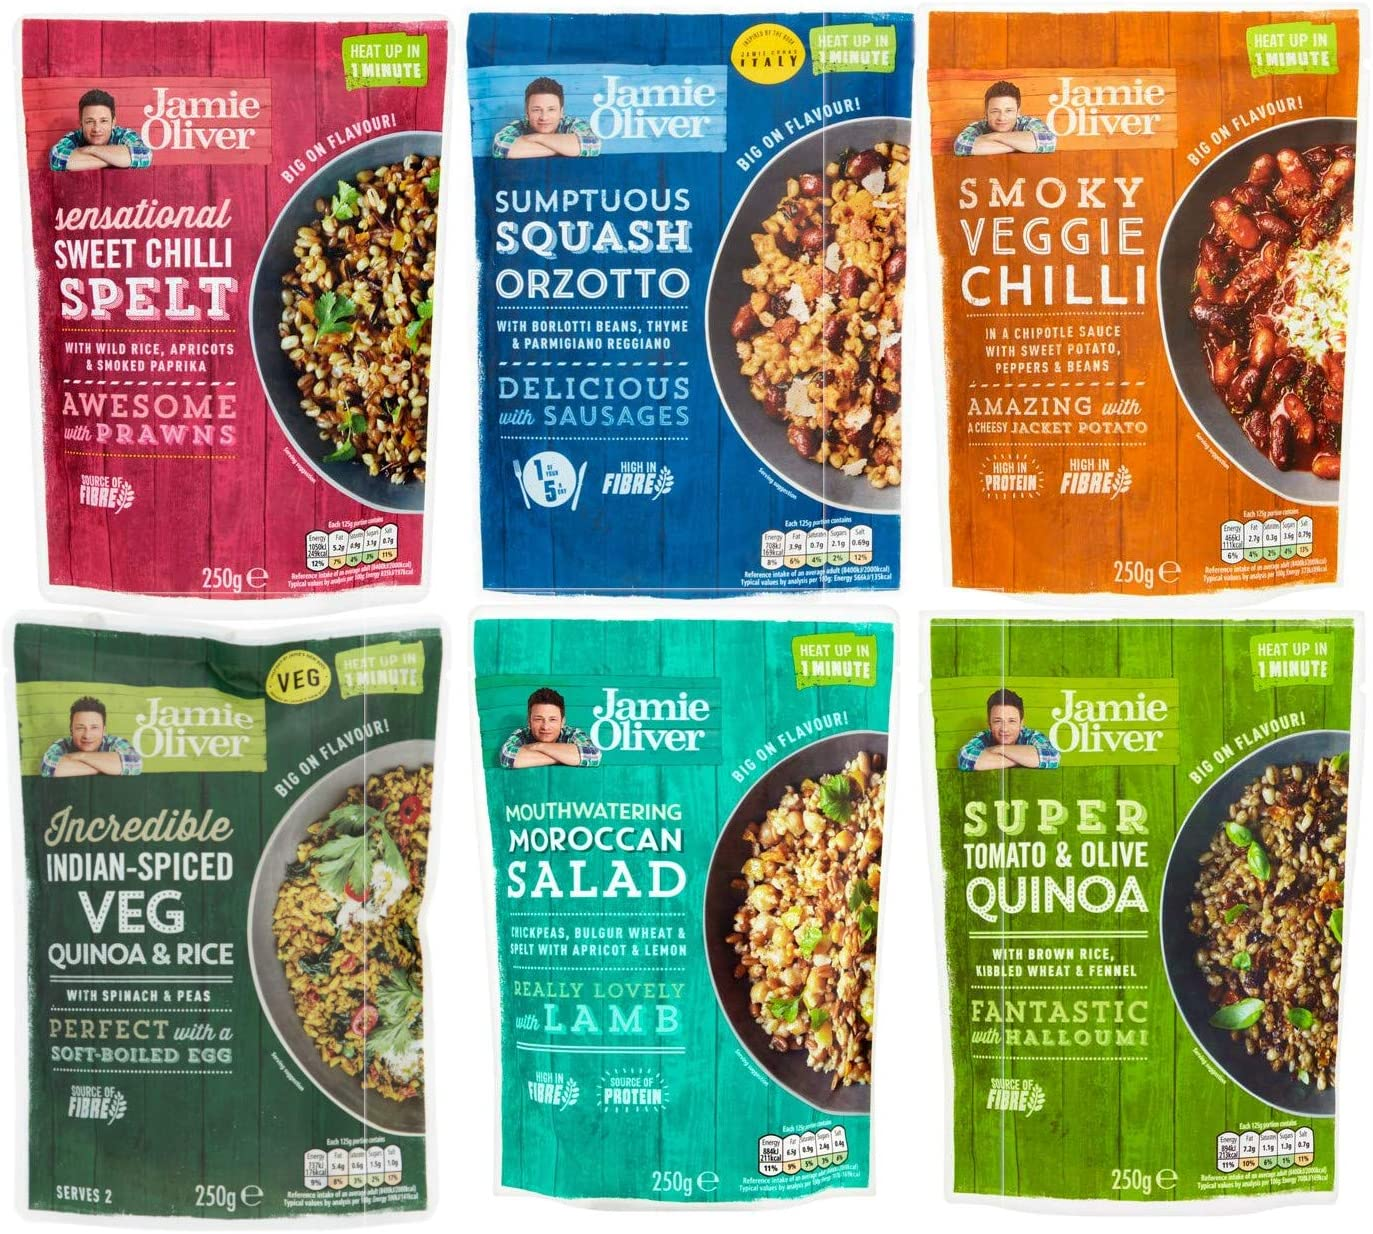 Jamie Oliver Ready To Eat Variety Pack 250g Each Squash Orzotto Sweet Chilli Spelt Tomato Olive Quinoa Indian Veggie Smoky Veggie Chilli Moroccan Salad Amazon Co Uk Grocery